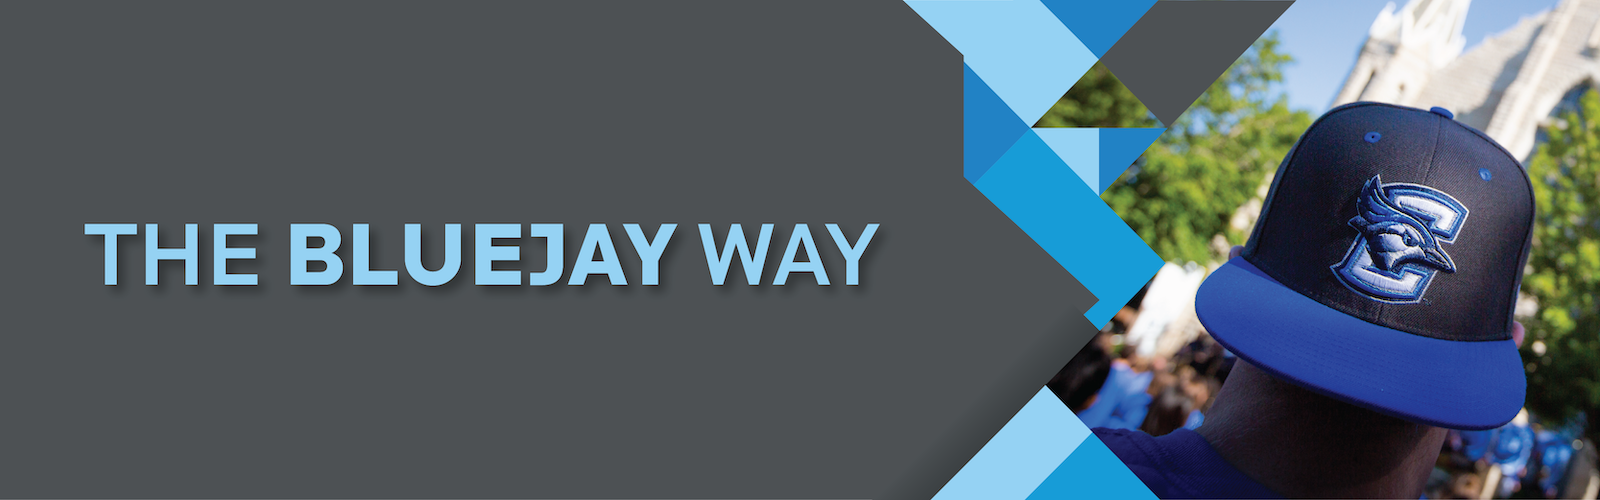 Bluejay Way Title Graphic